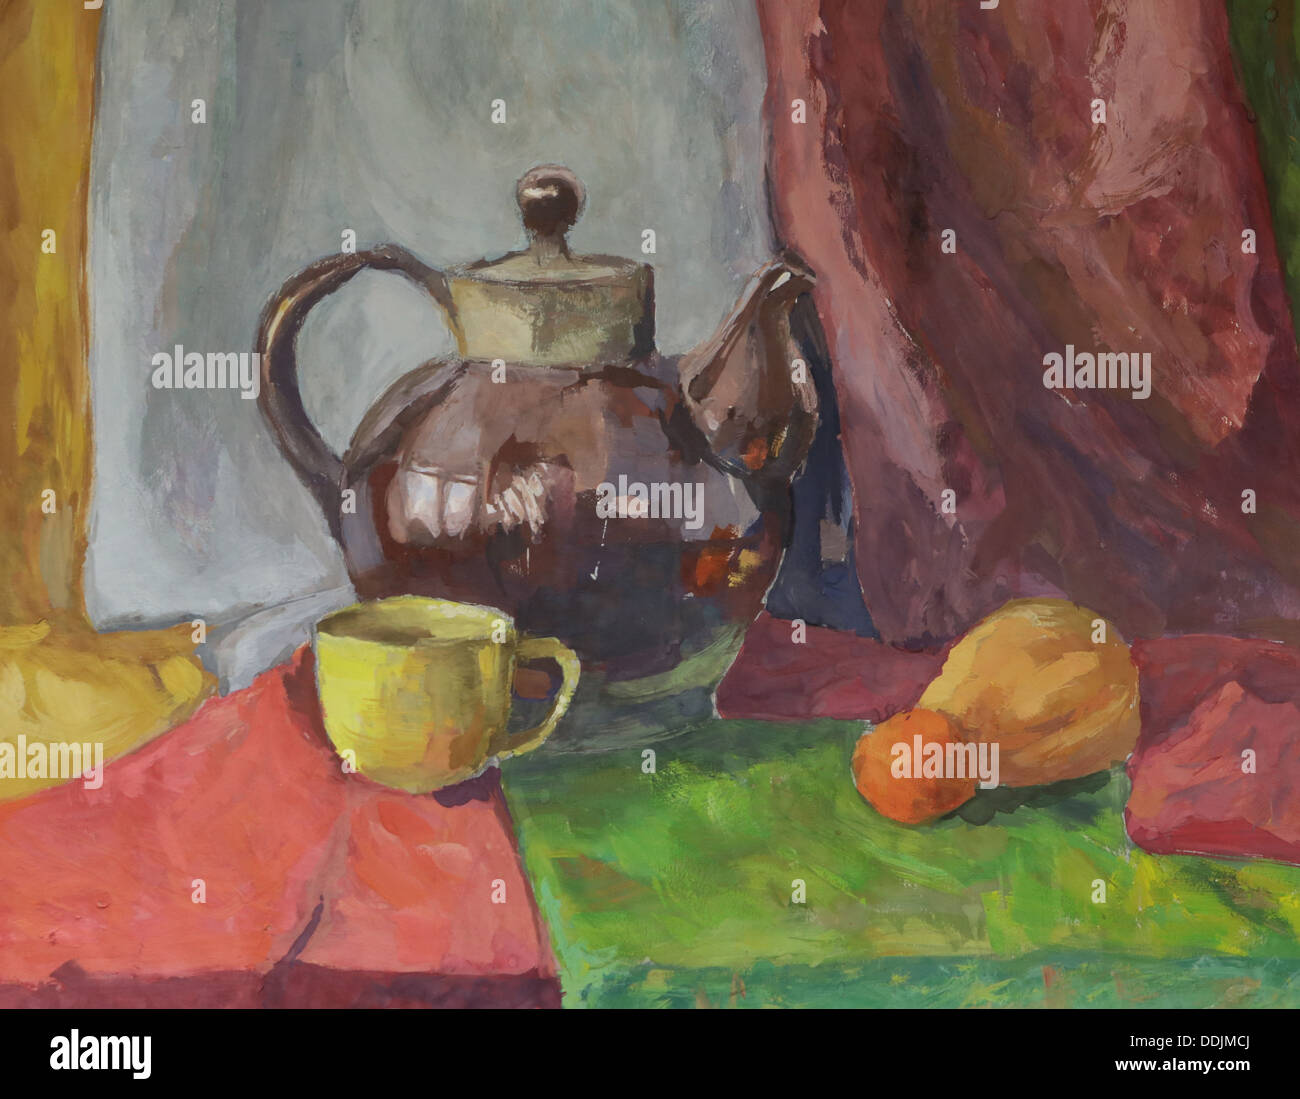 Still life with Teapot. Painting. Gouache on Paper. - Stock Image